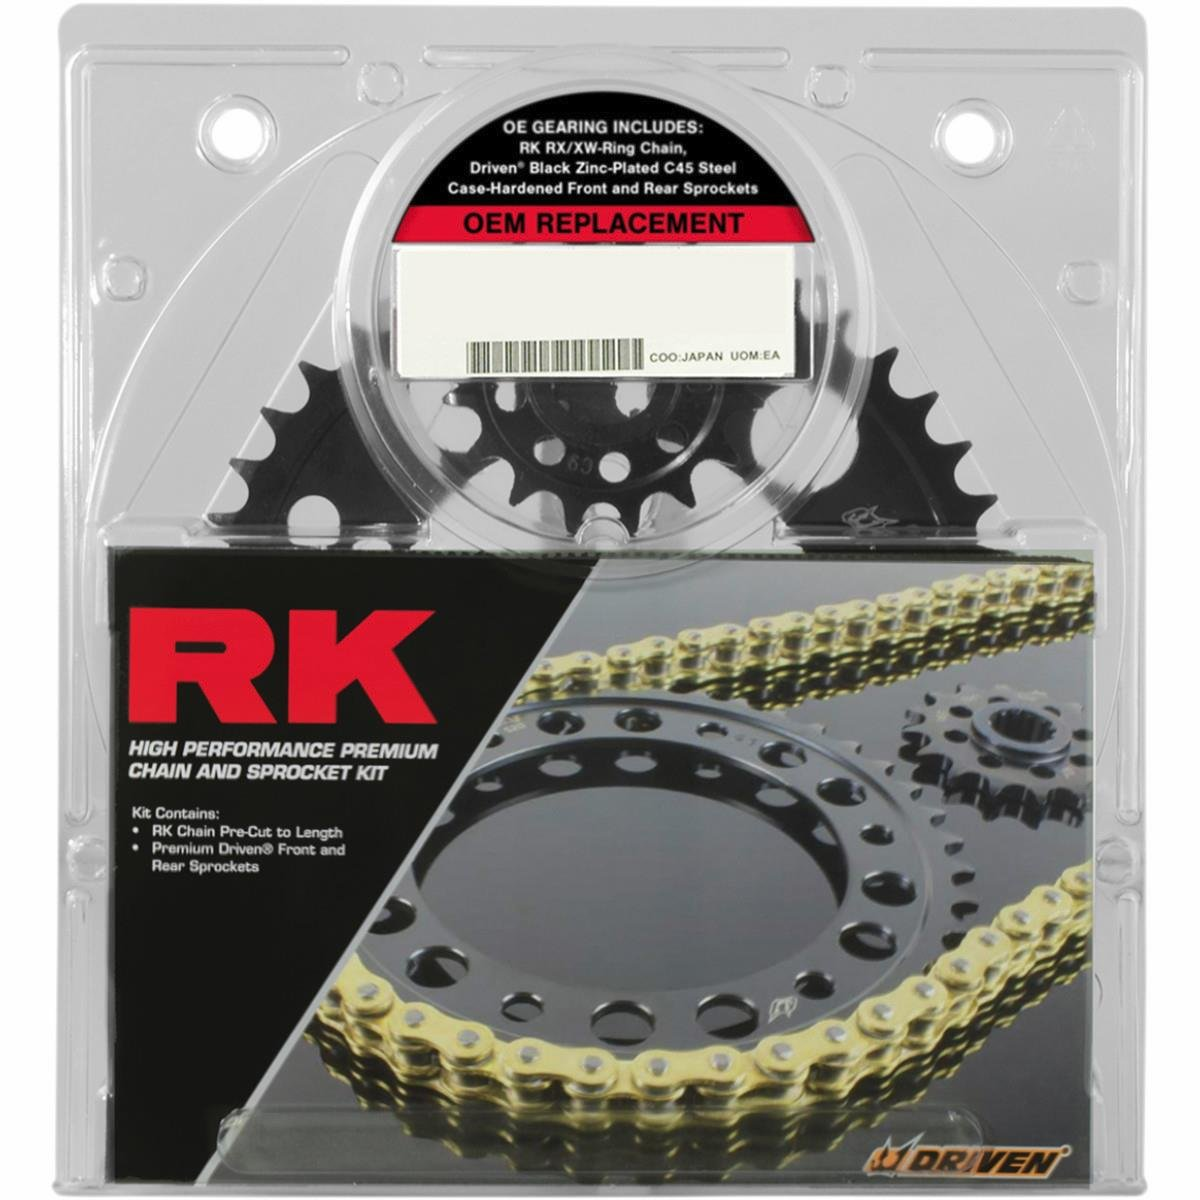 RK OEM Replacement Chain and Sprocket Kit Natural 3068990E